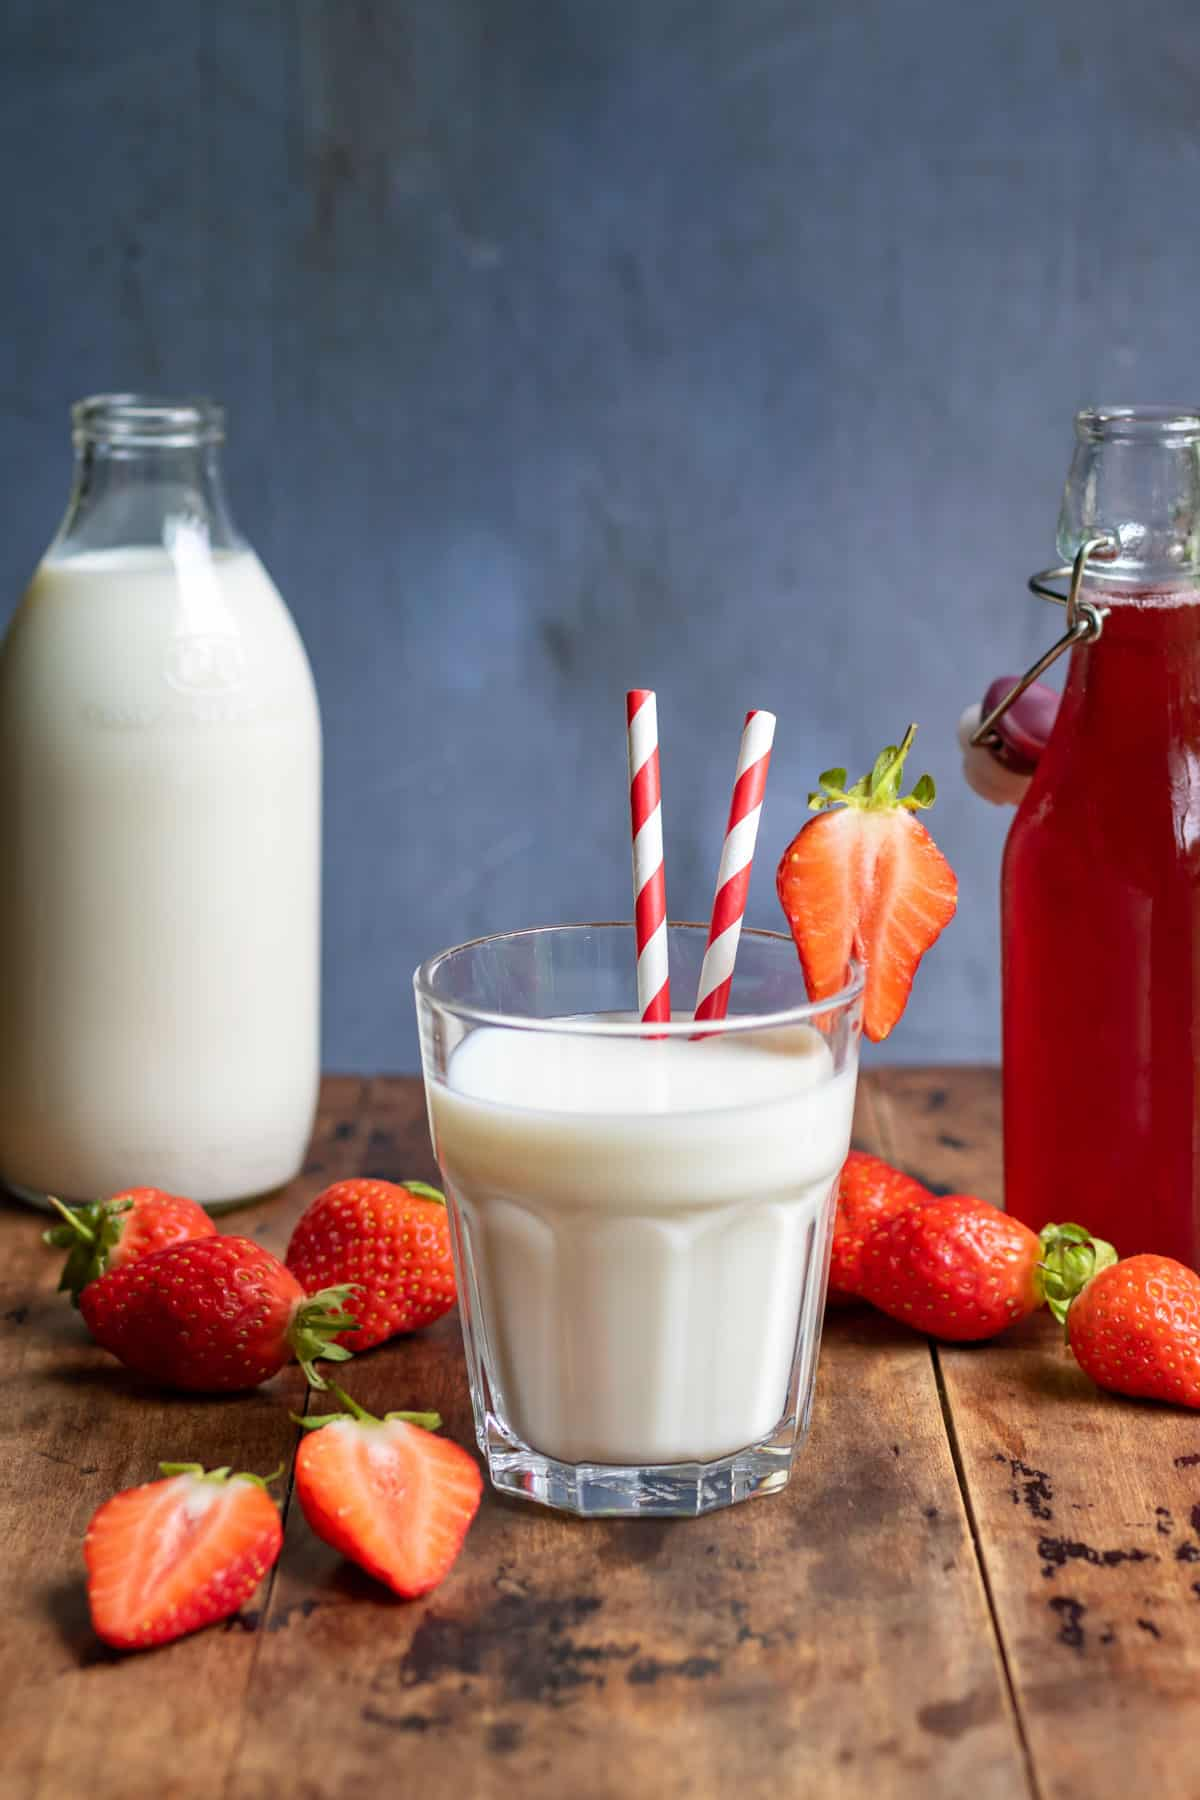 Table with glass of milk and strawberries.